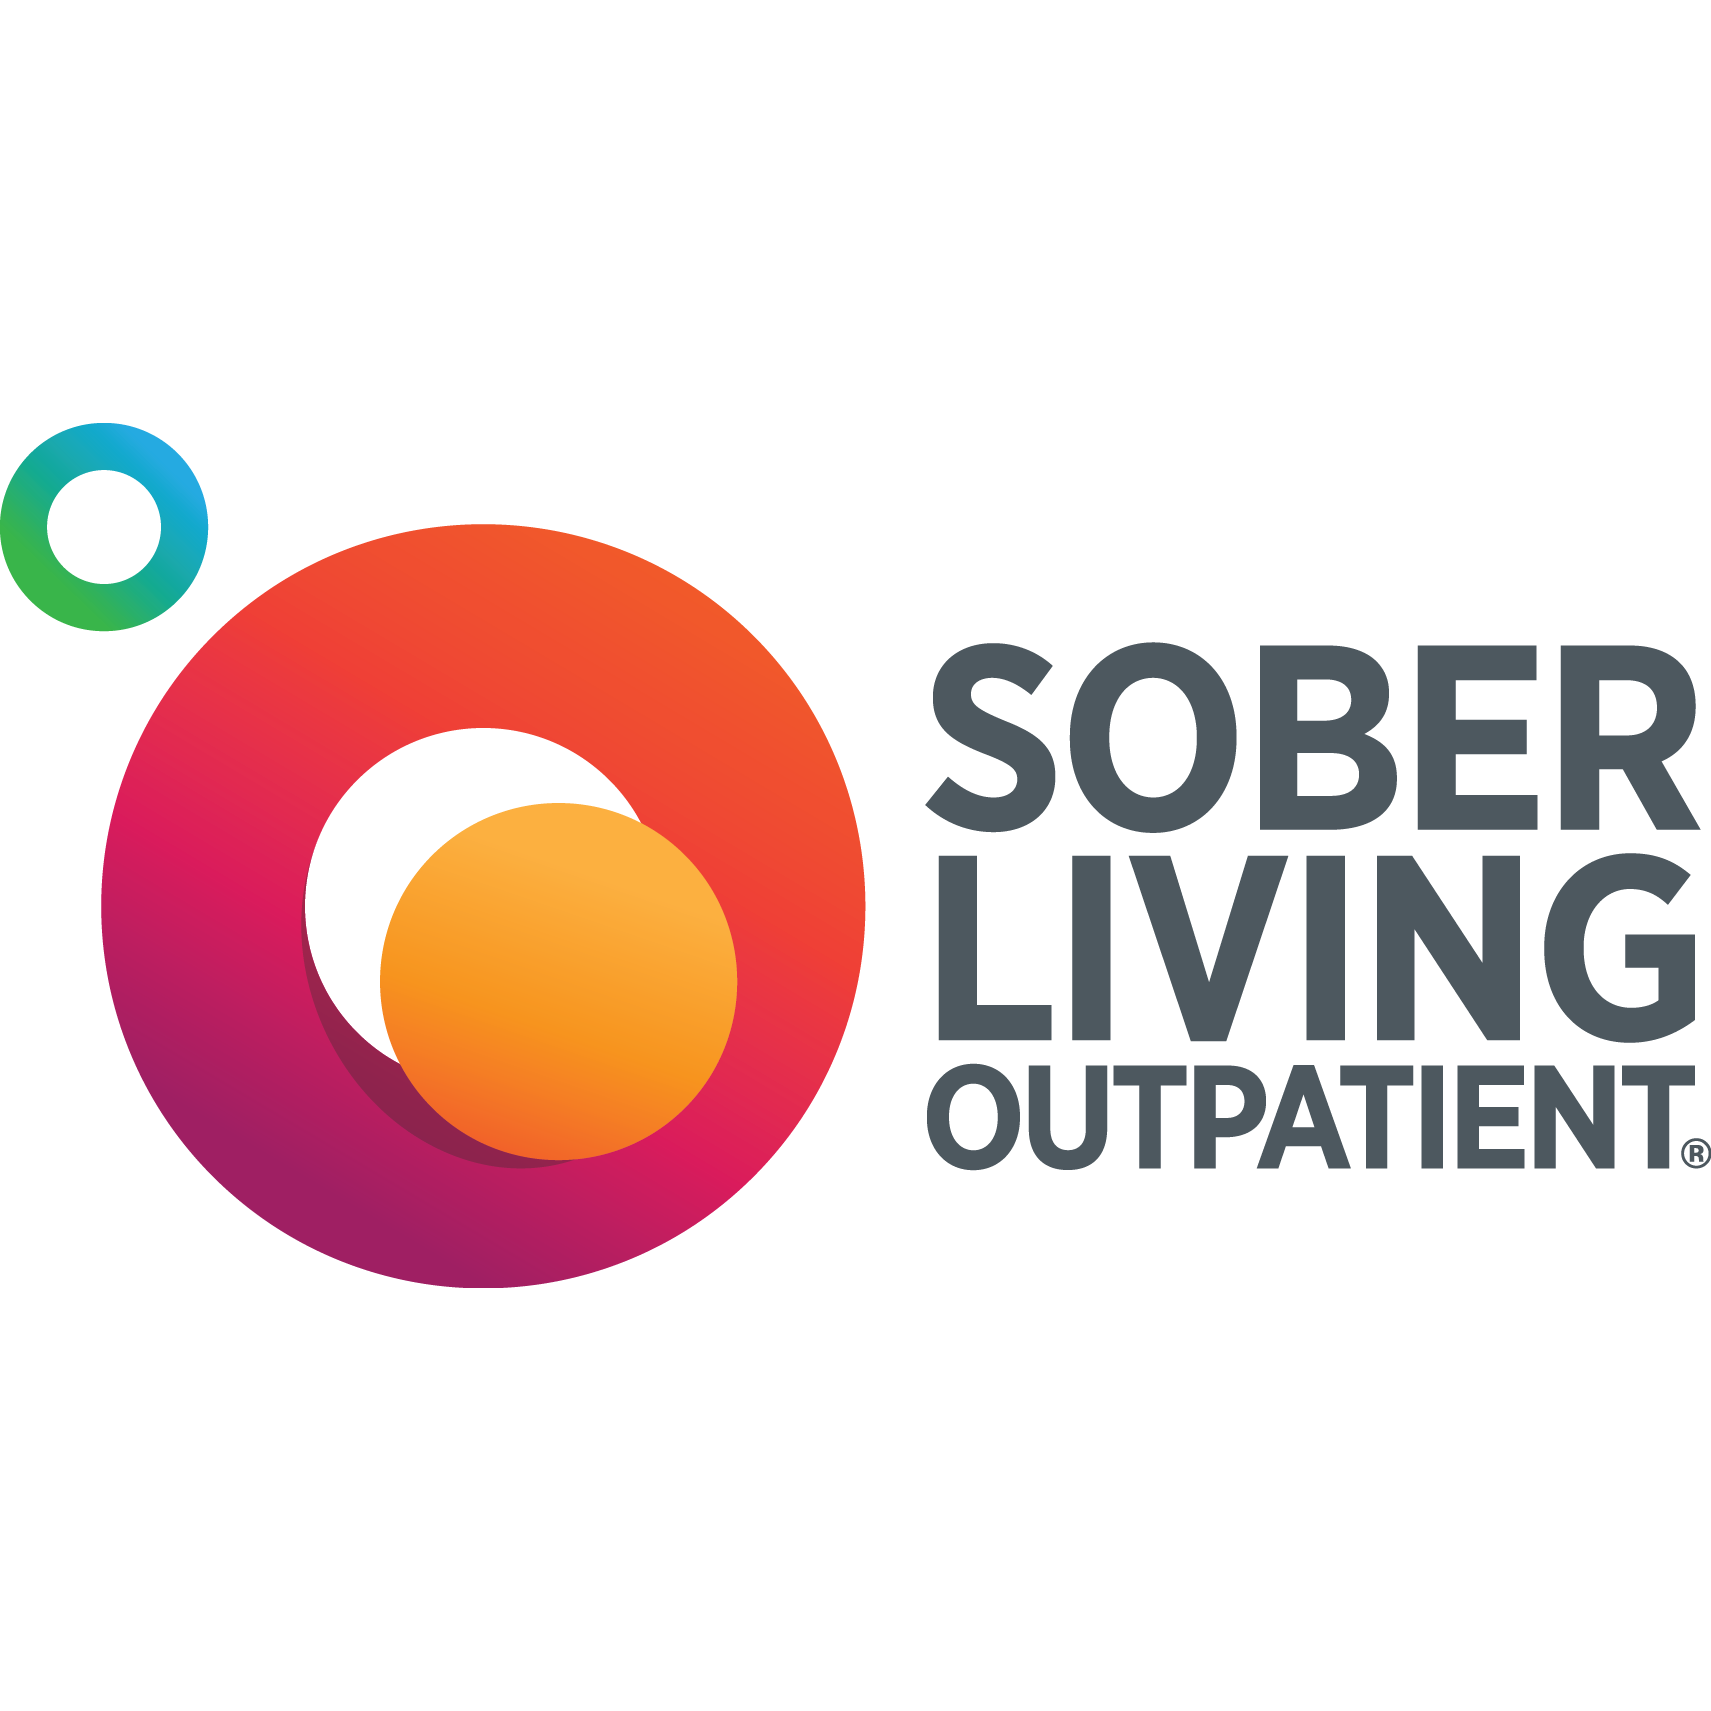 Redemption Halfway House Delray Beach: Sober Living Outpatient In Delray Beach, FL